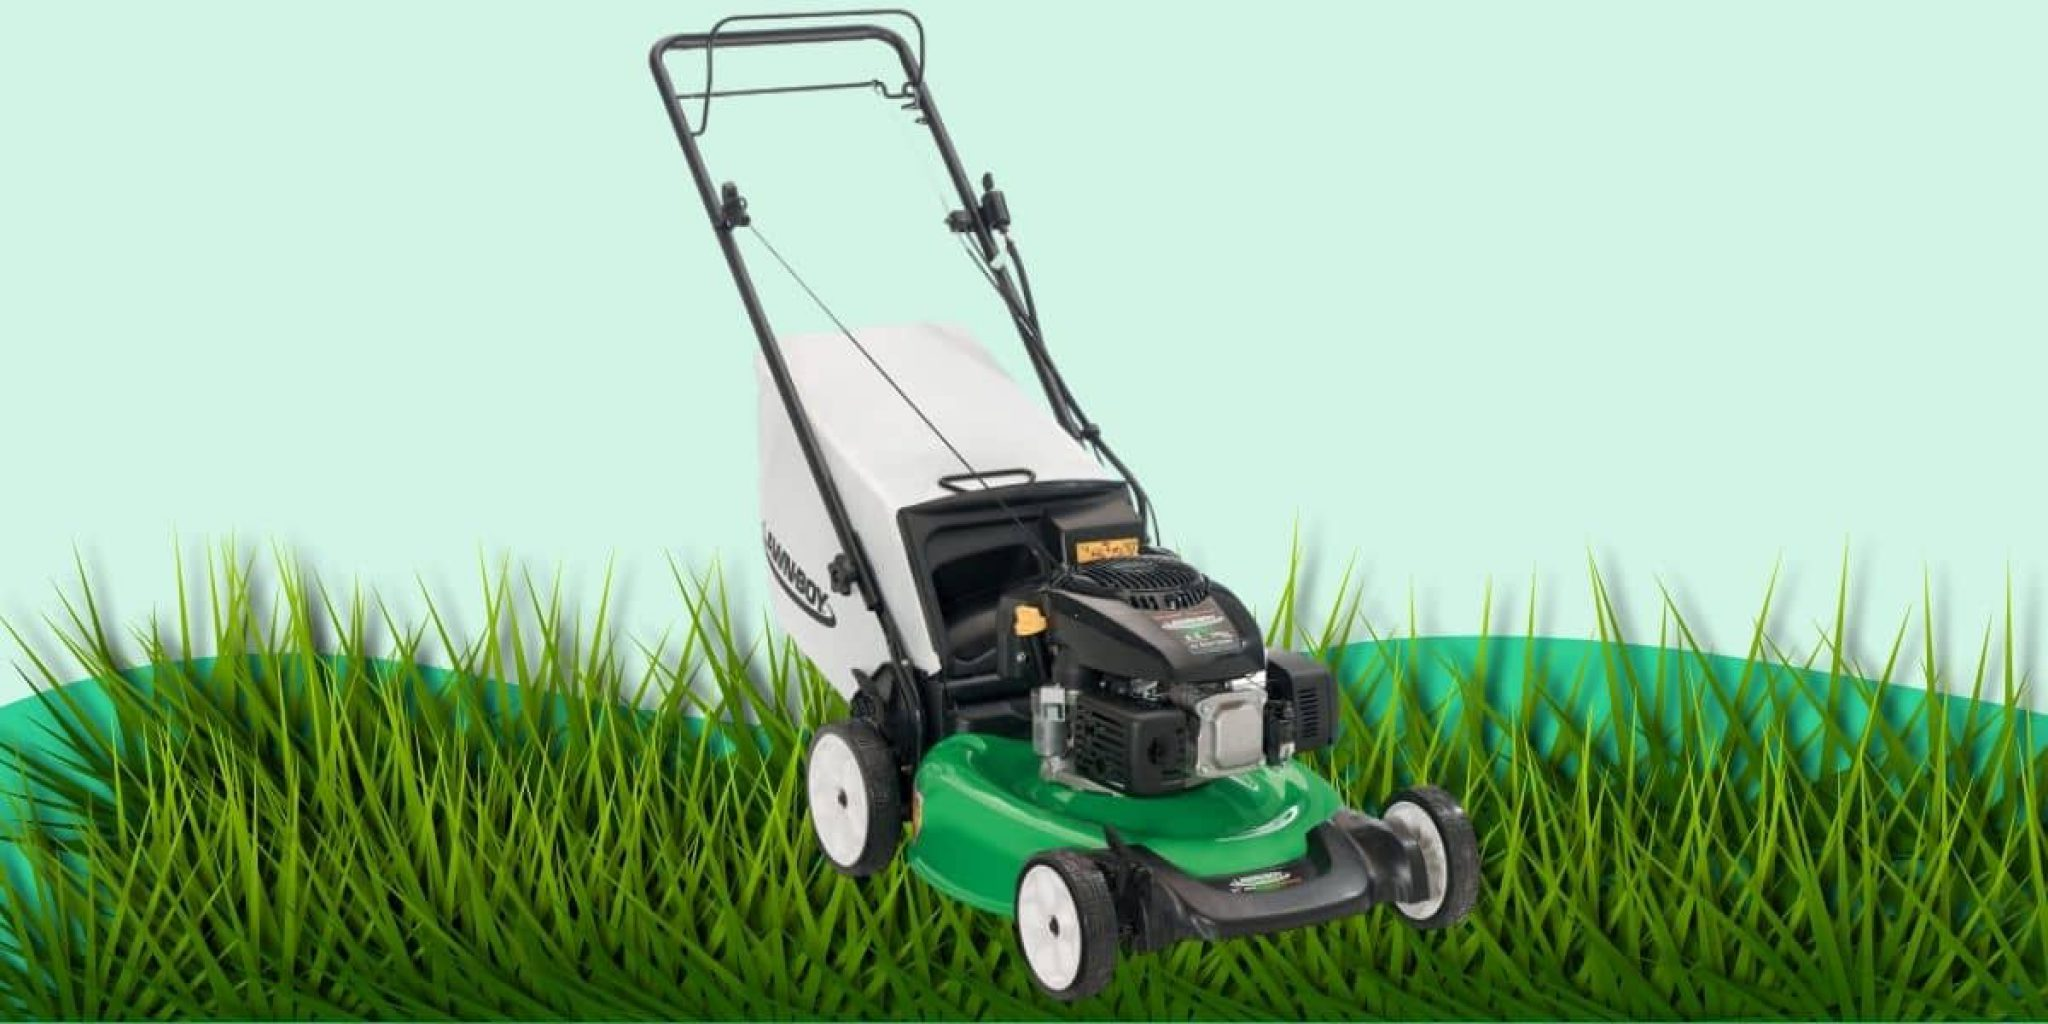 Lawn-boy 17734 Gas Powered Lawn Mower Review - Best Mowing Performance Ever! 1